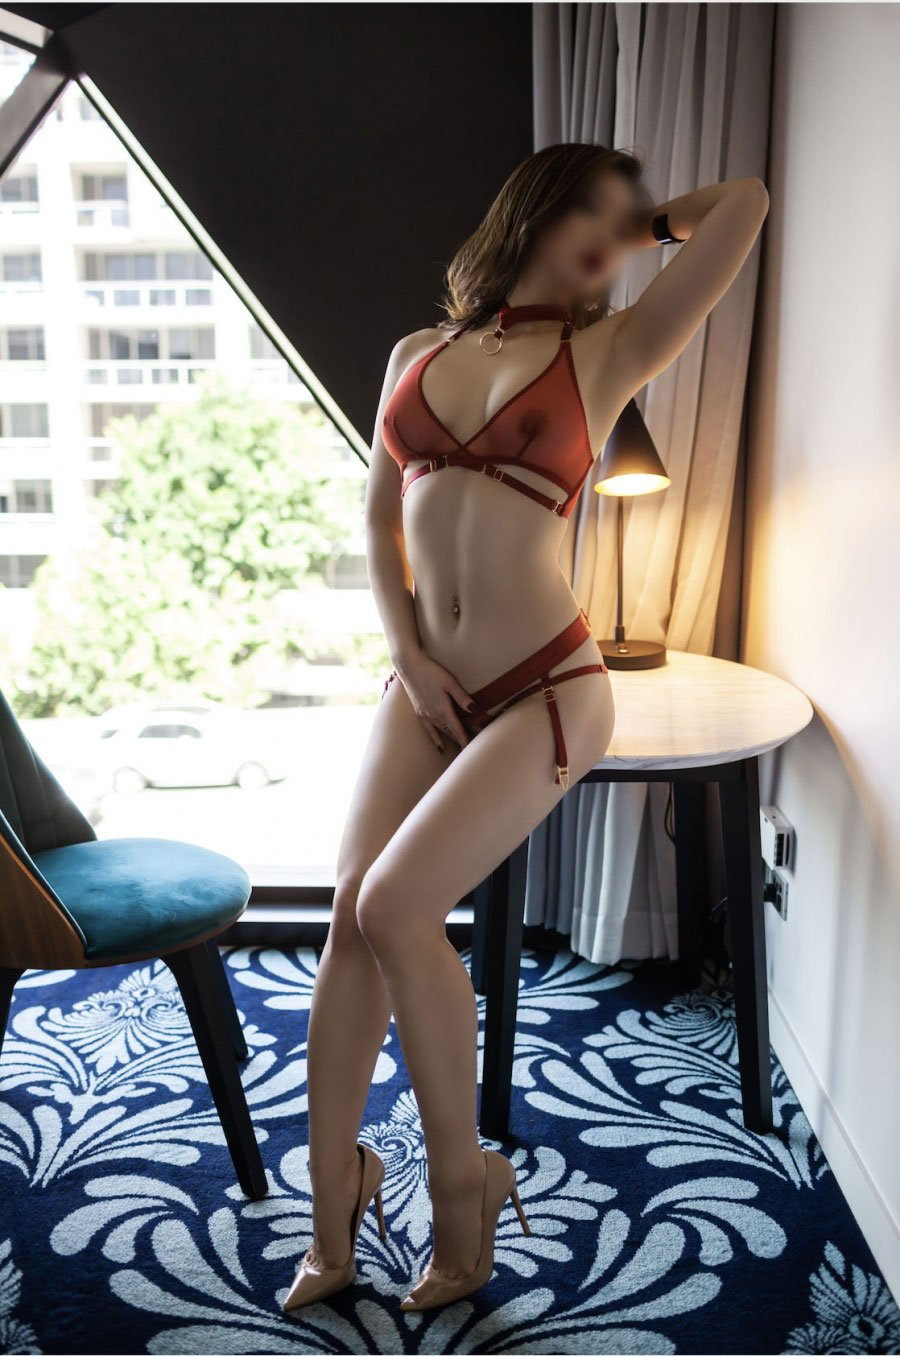 Jessi Fox Visiting Canberra June 4th - 6th - Canberra Escorts